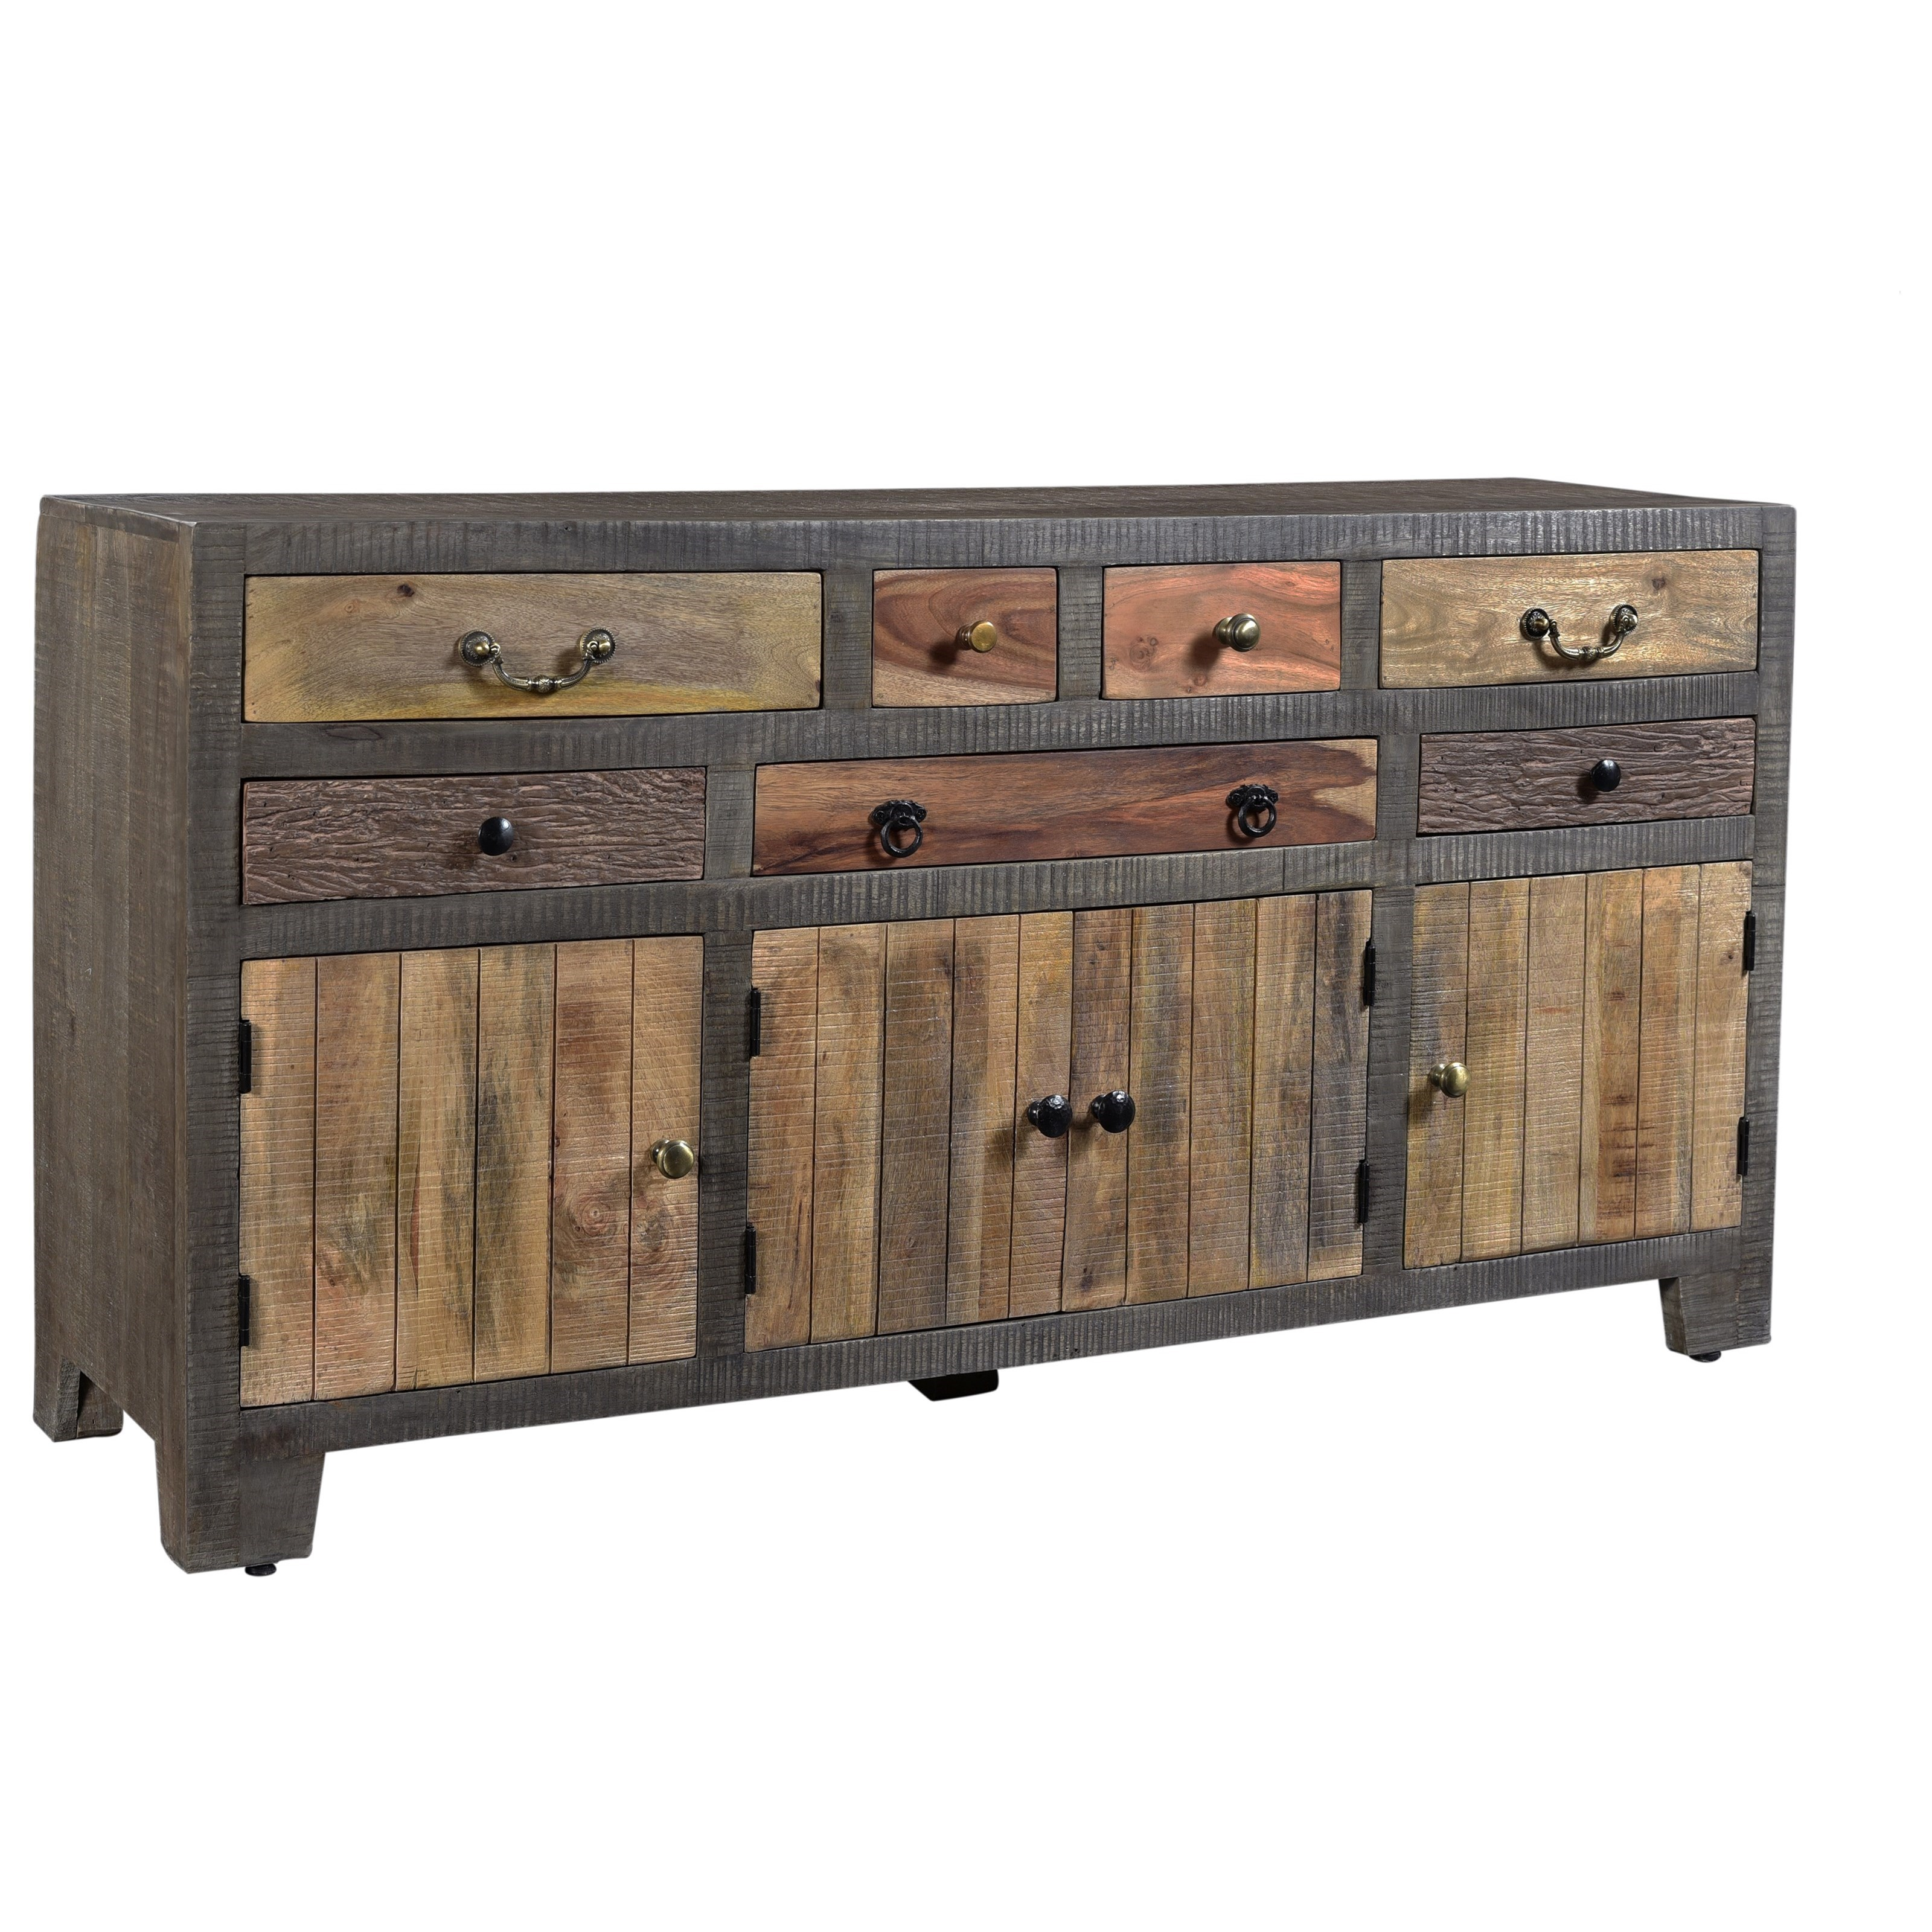 C2C Accents Seven Drawer Four Door Credenza by C2C at Walker's Furniture